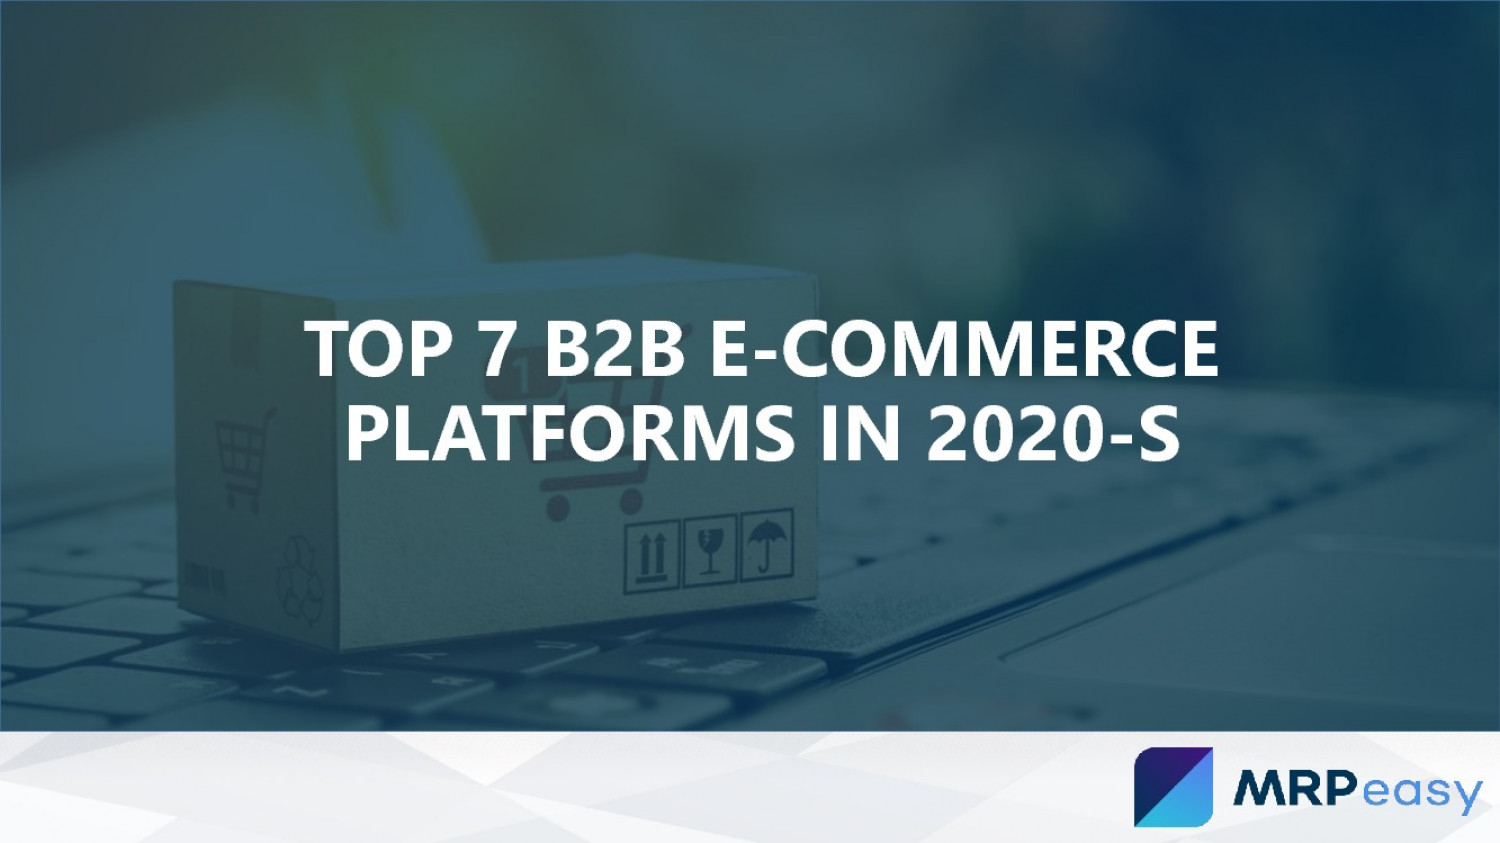 Top 7 B2B E-Commerce Platforms in 2020-s Infographic